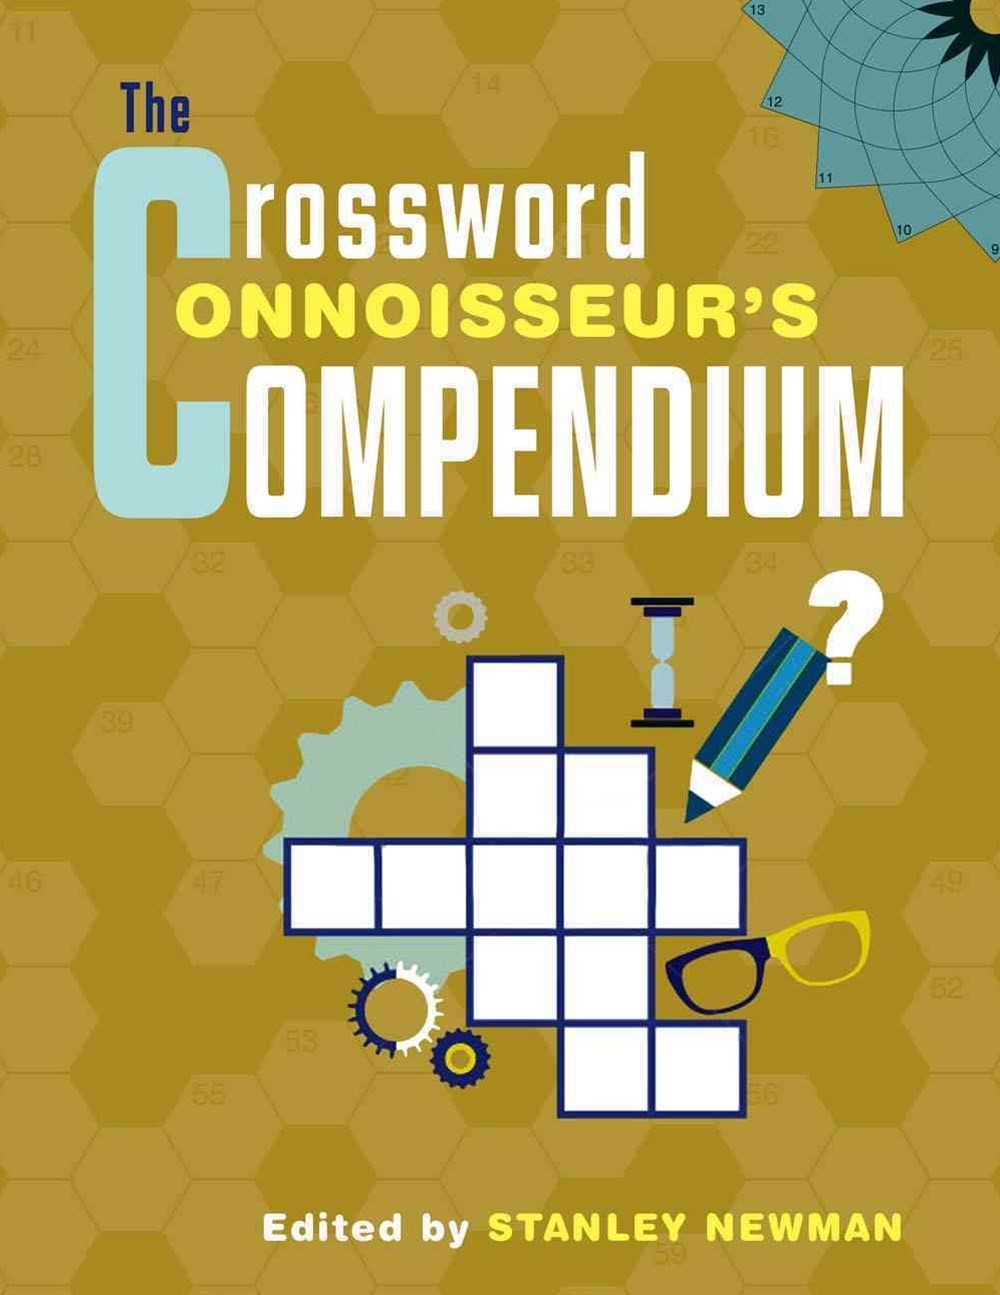 The Crossword Connoisseurs Compendium